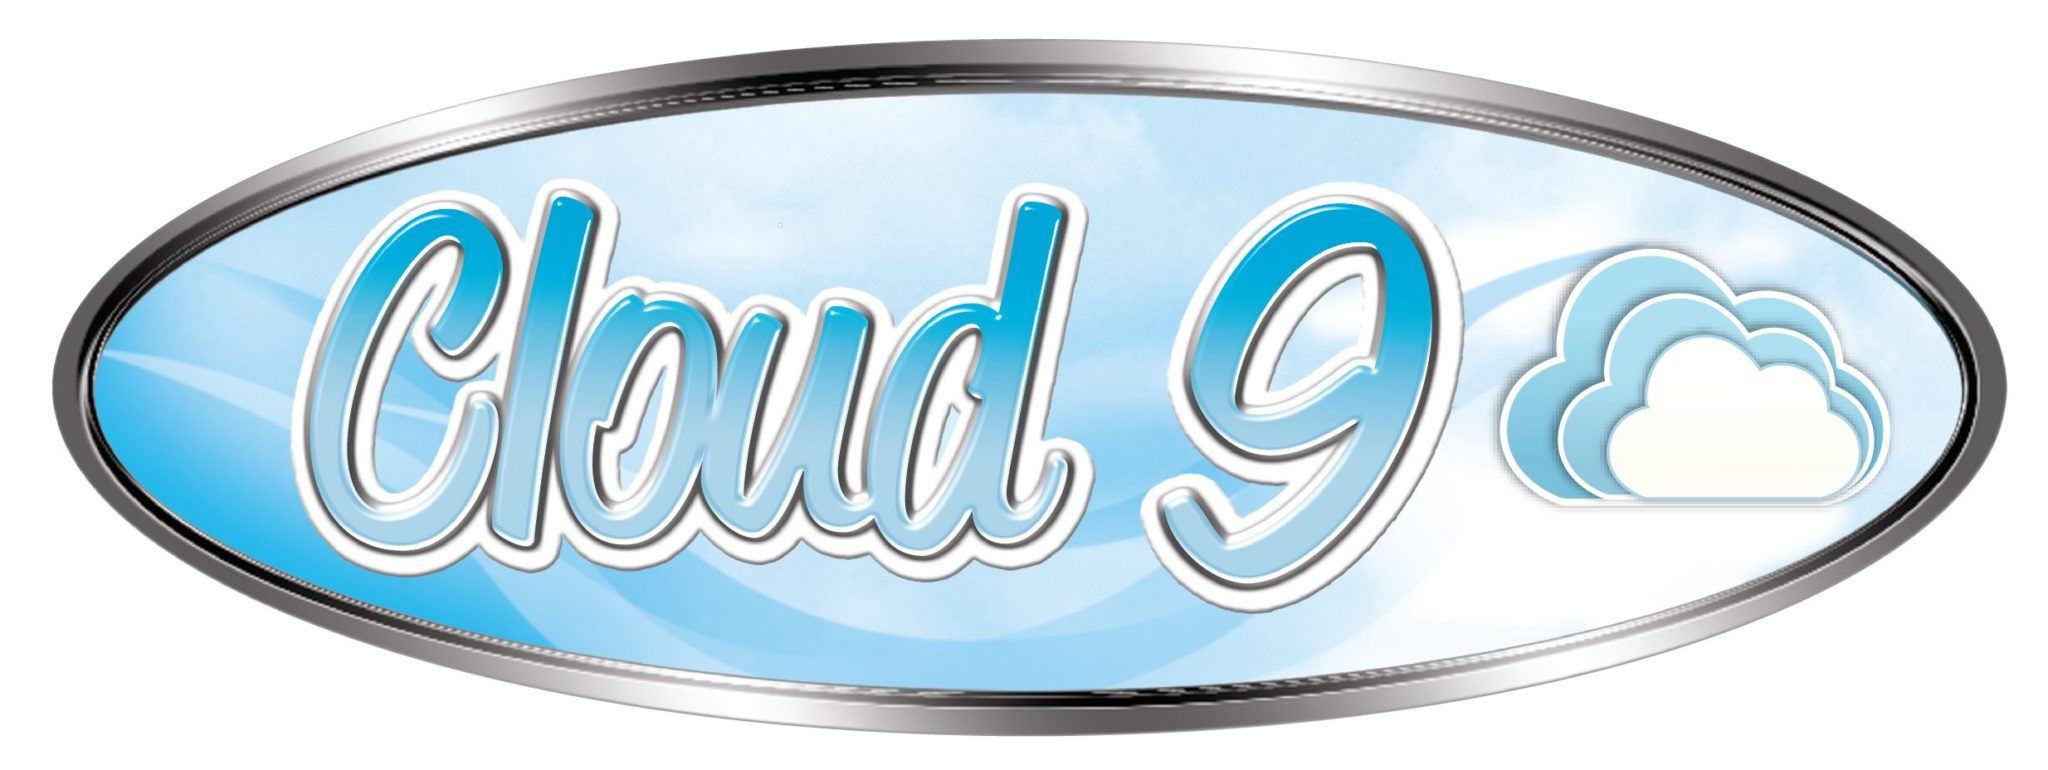 cloud9-logo-final